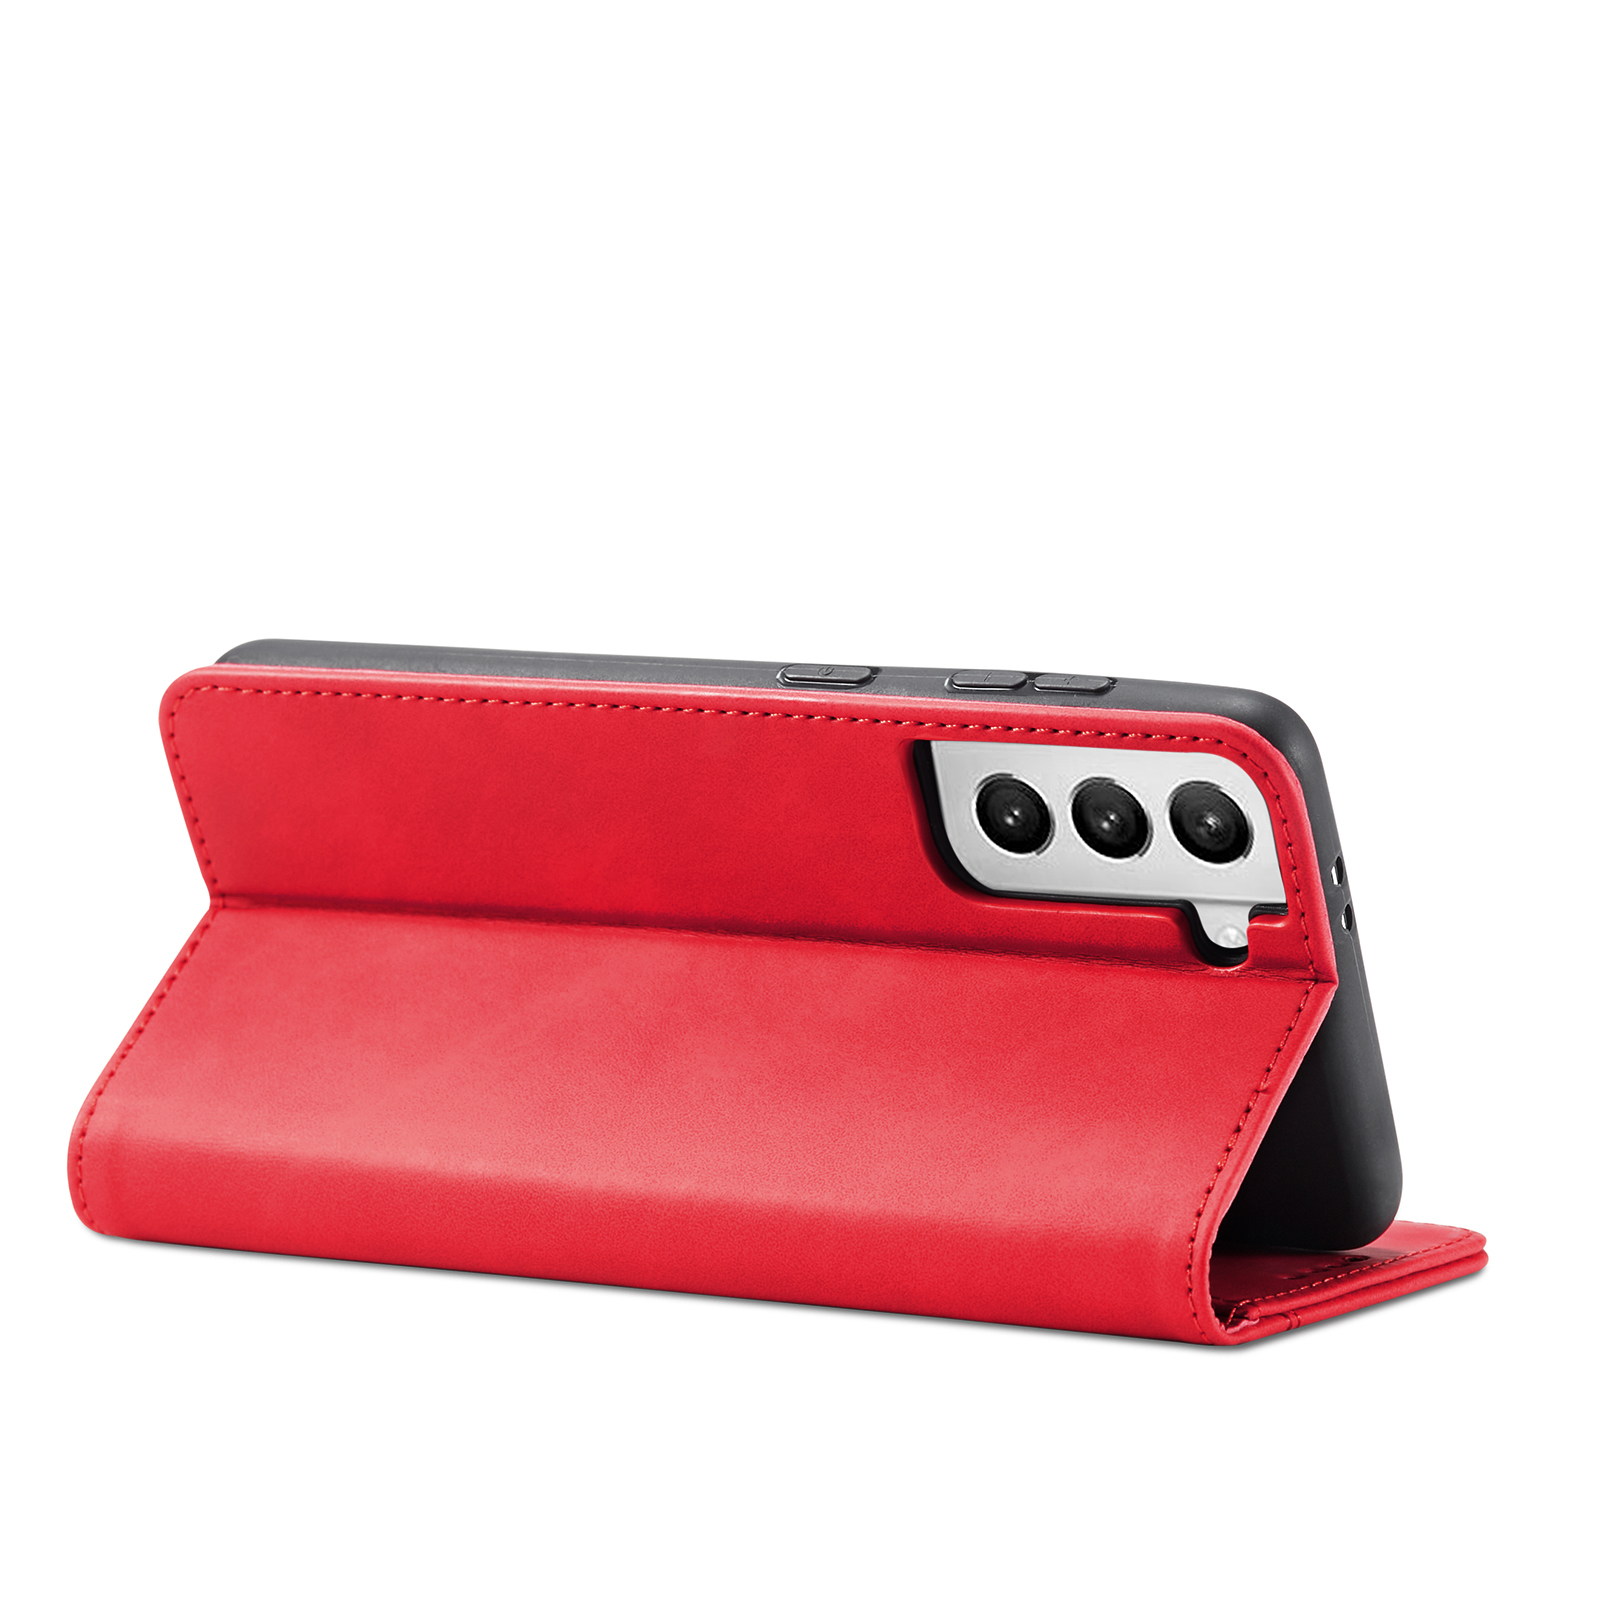 Mobile Phone Case For Samsung S30 Flip Phone Case Protective Case Cover Red